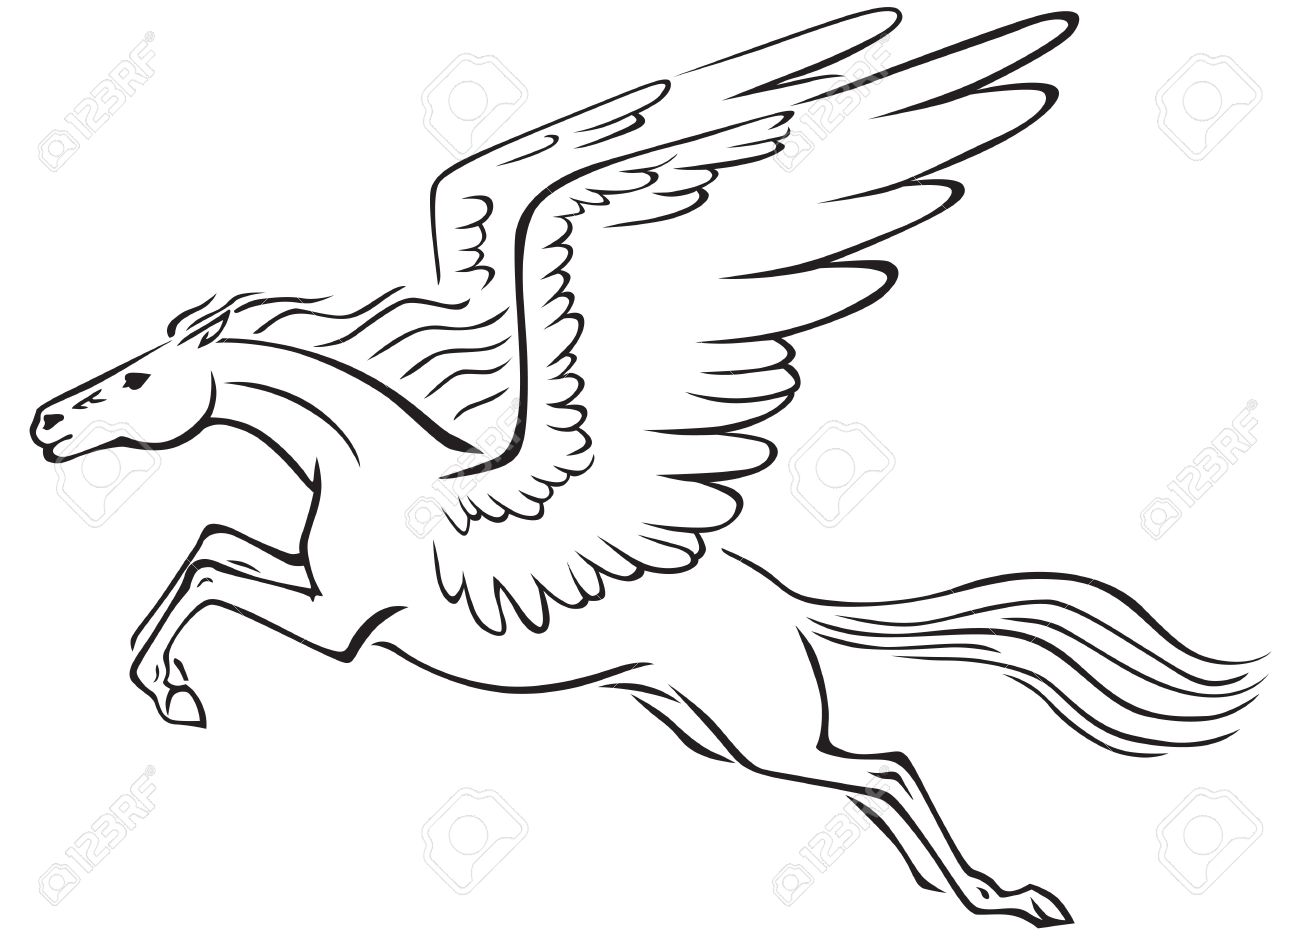 1300x936 Black And White Line Art Image Of A Winged Horse Pegasus Royalty